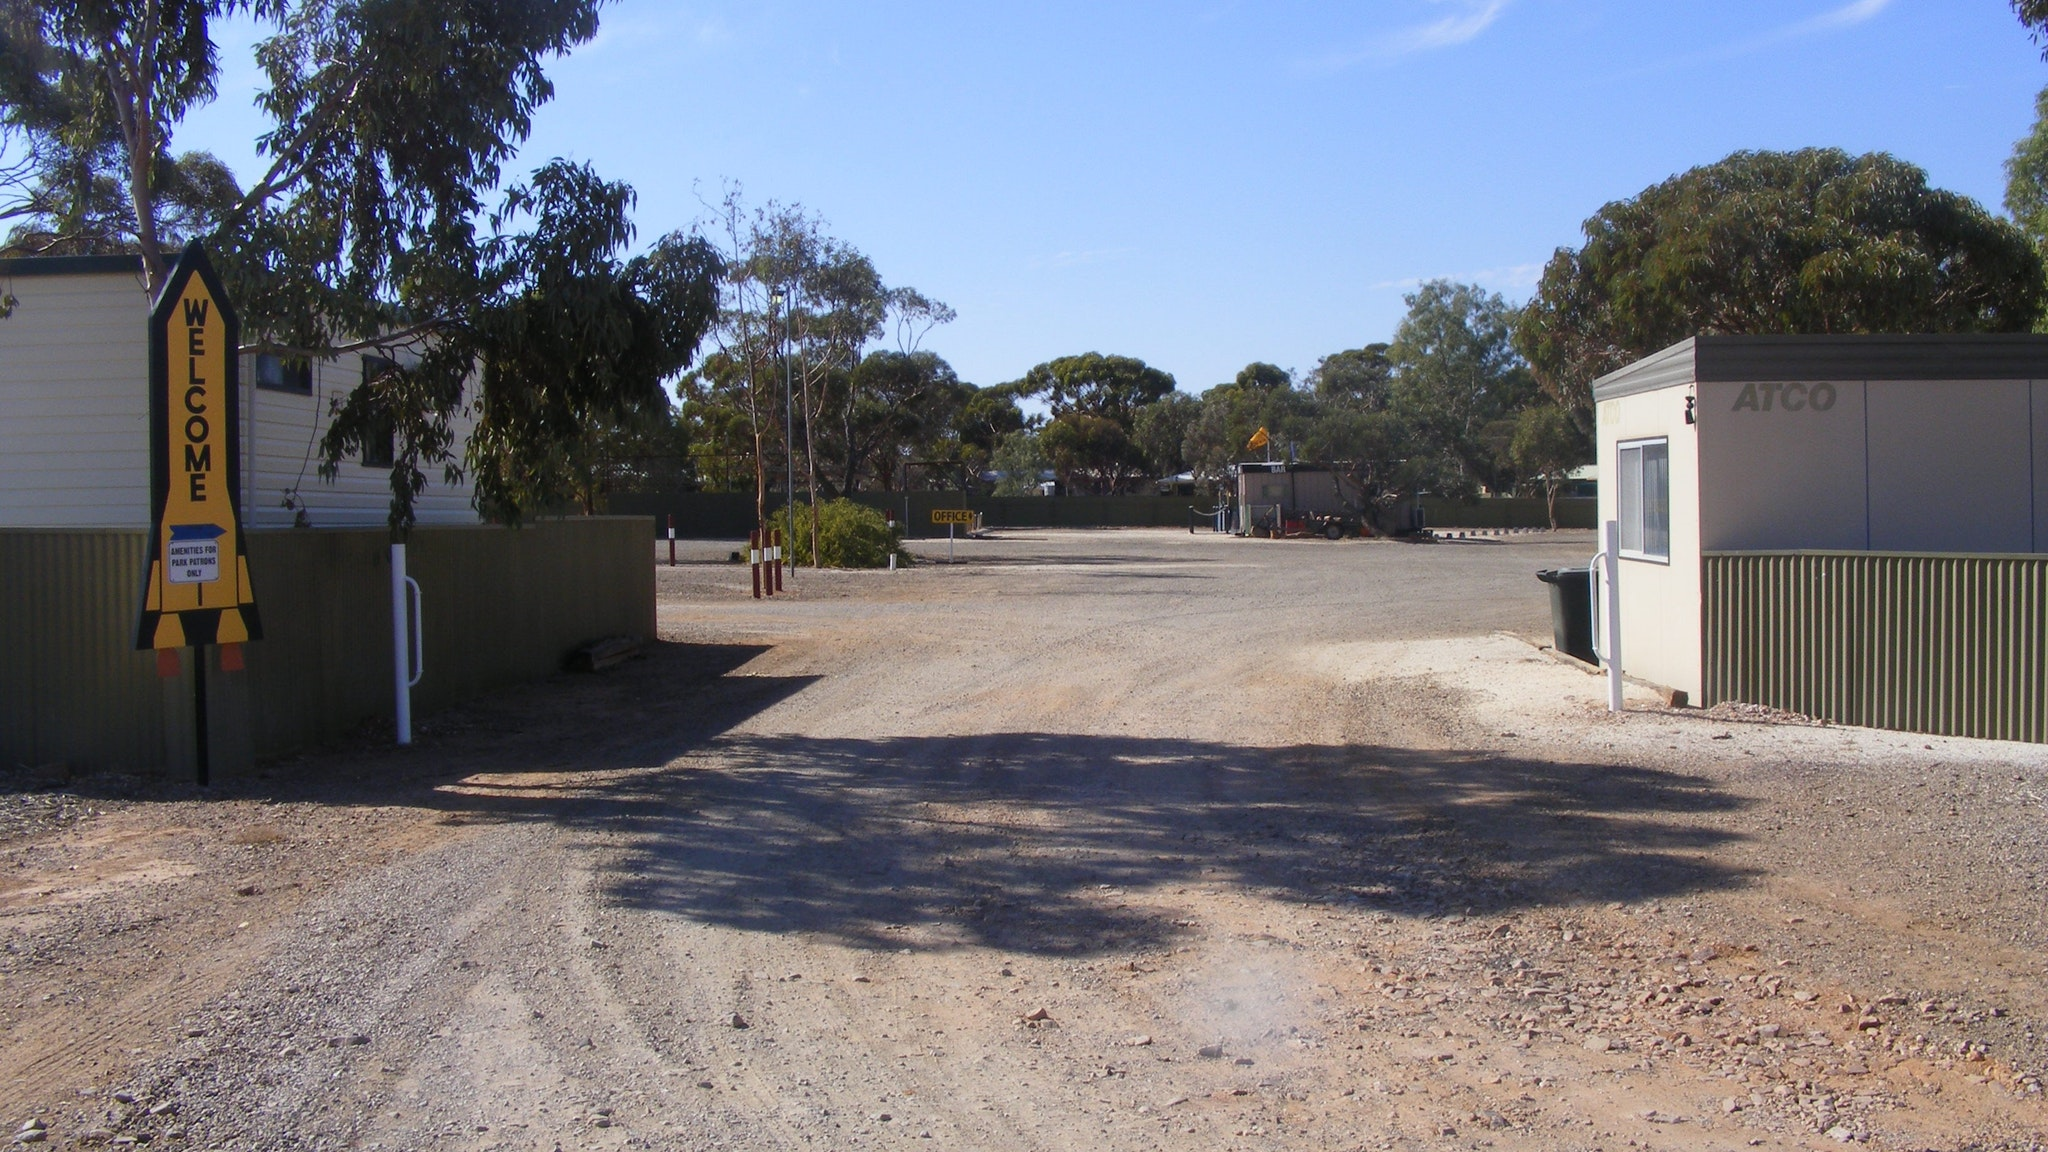 Woomera Traveller's Village and Caravan Park - Accommodation Perth